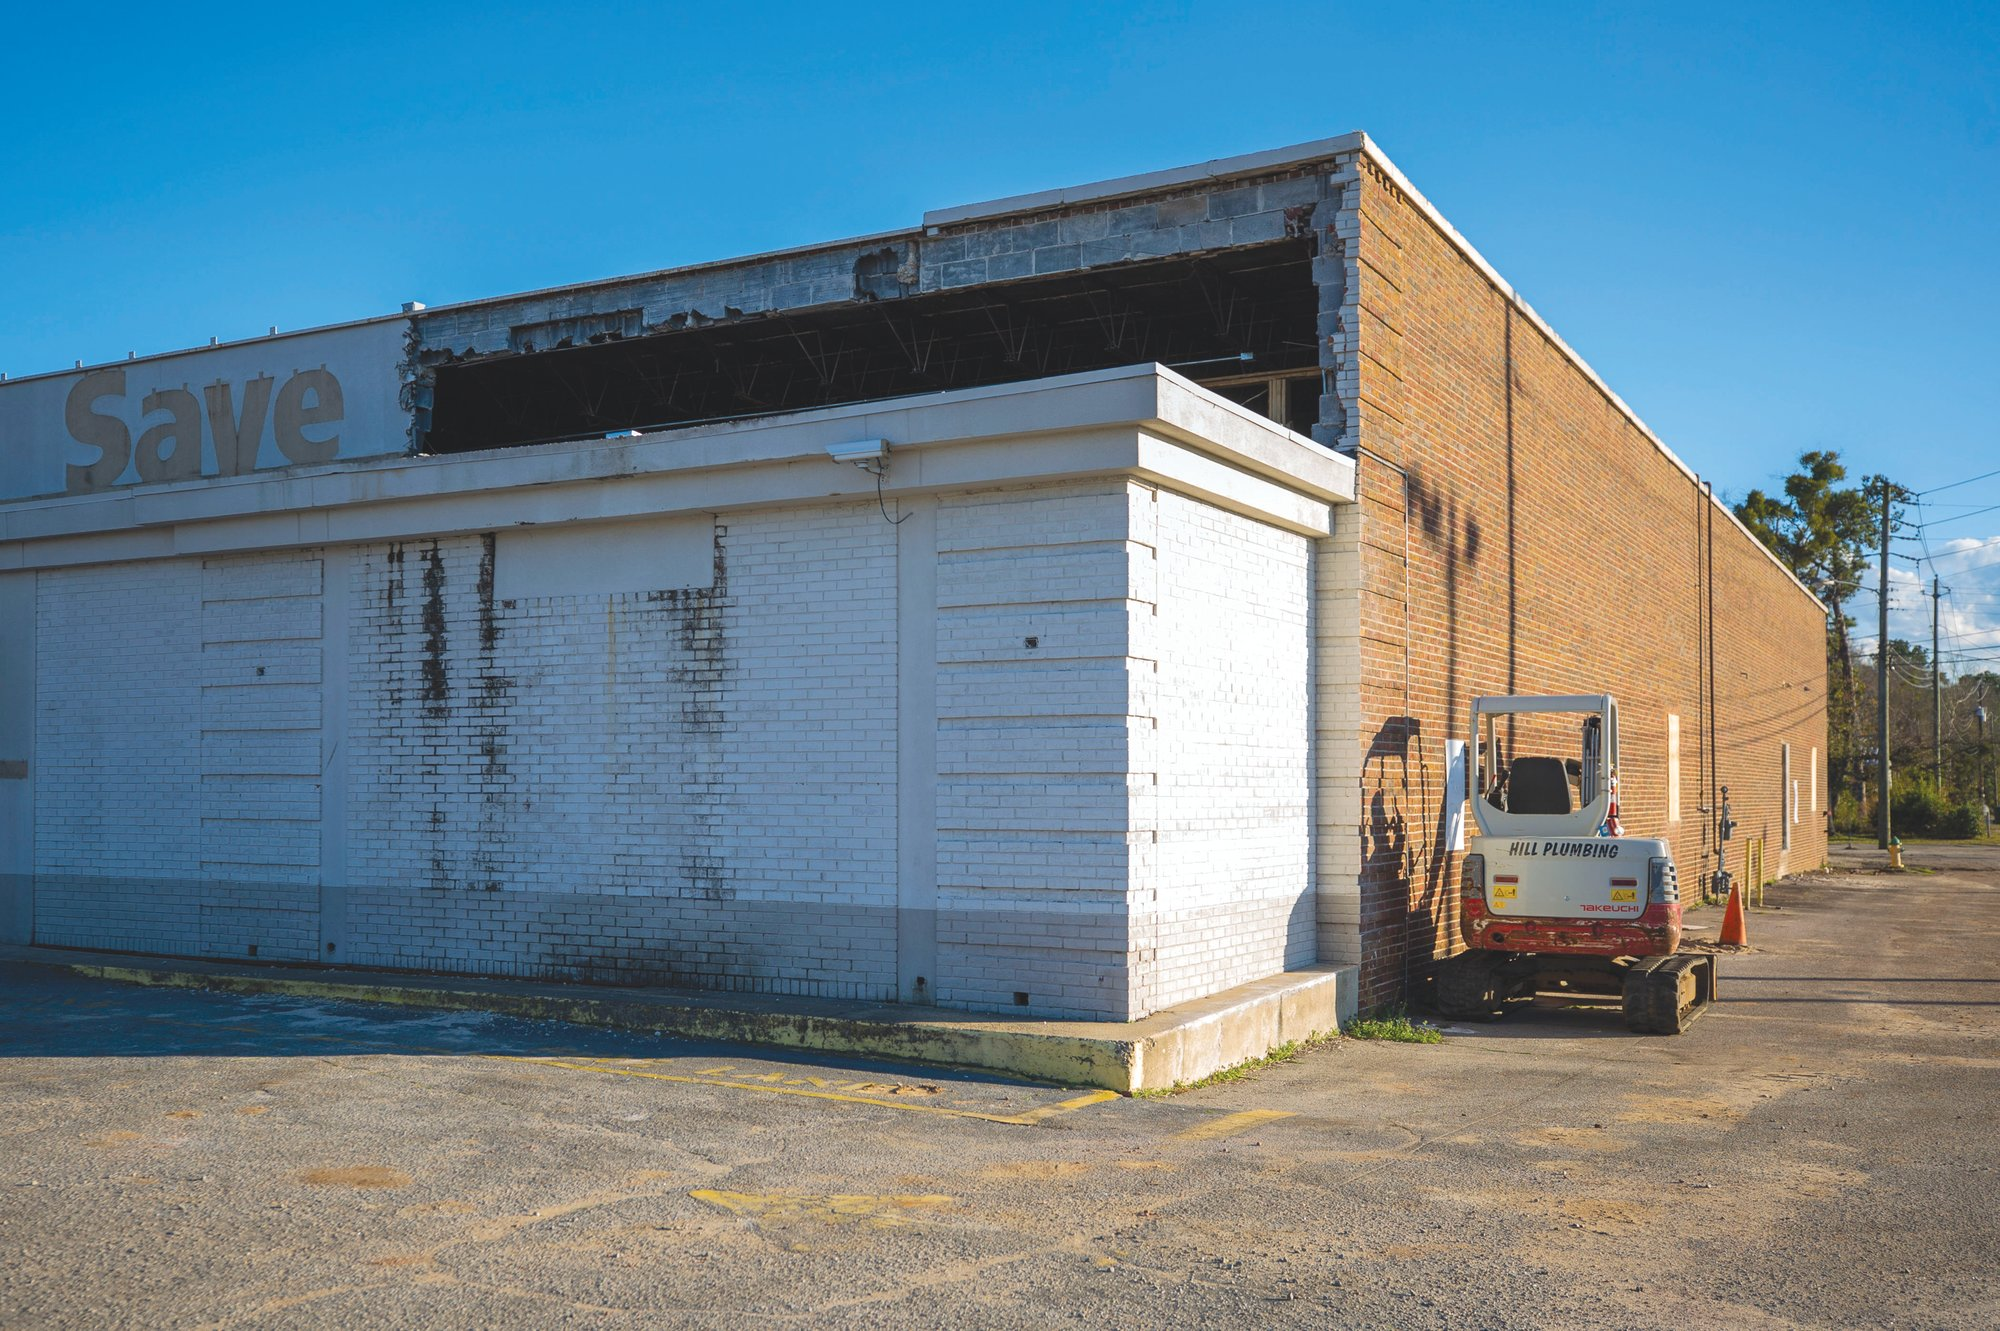 The construction renovation project in the former Save-A-Lot discount supermarket began last month.